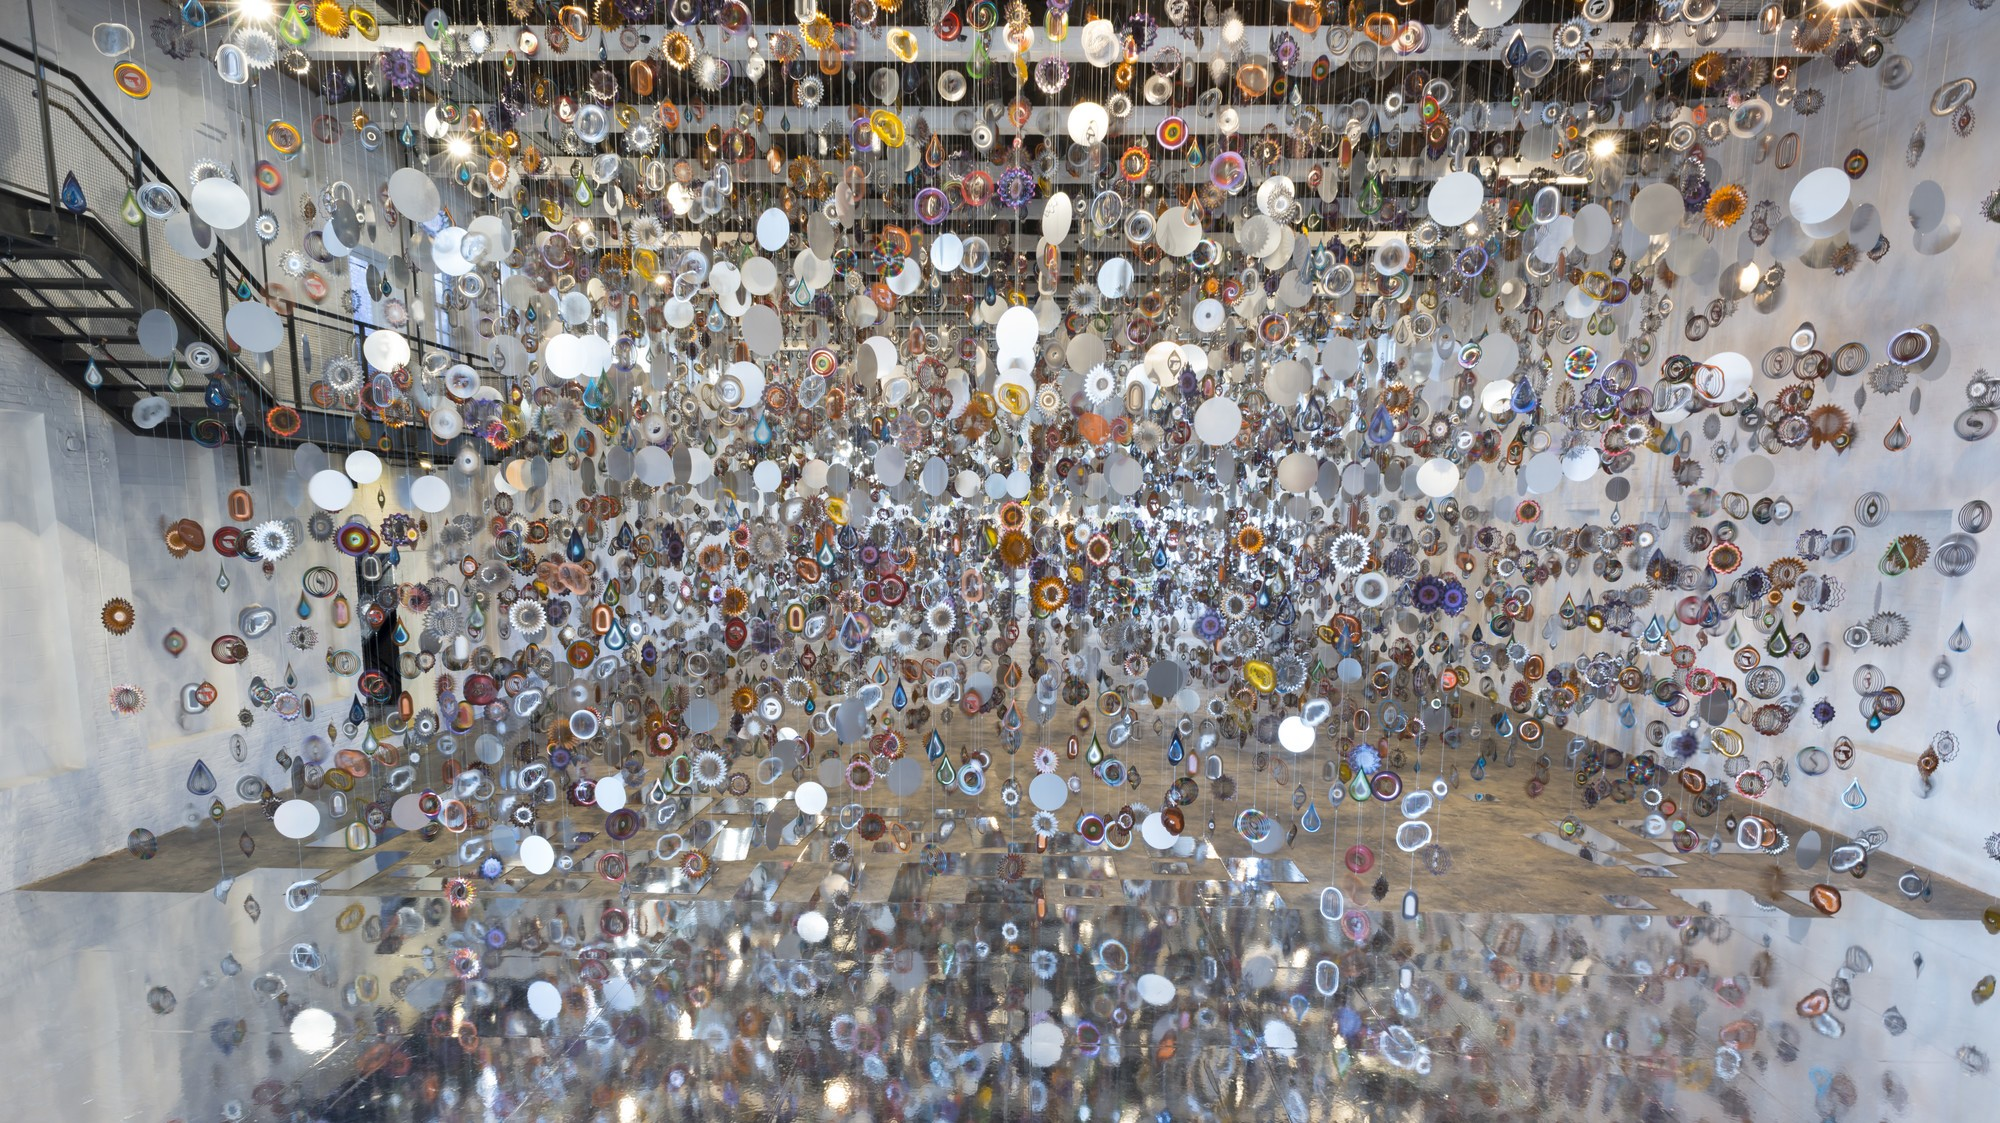 Take A Tour Of Nick Cave S Colossal Playground Of An Art